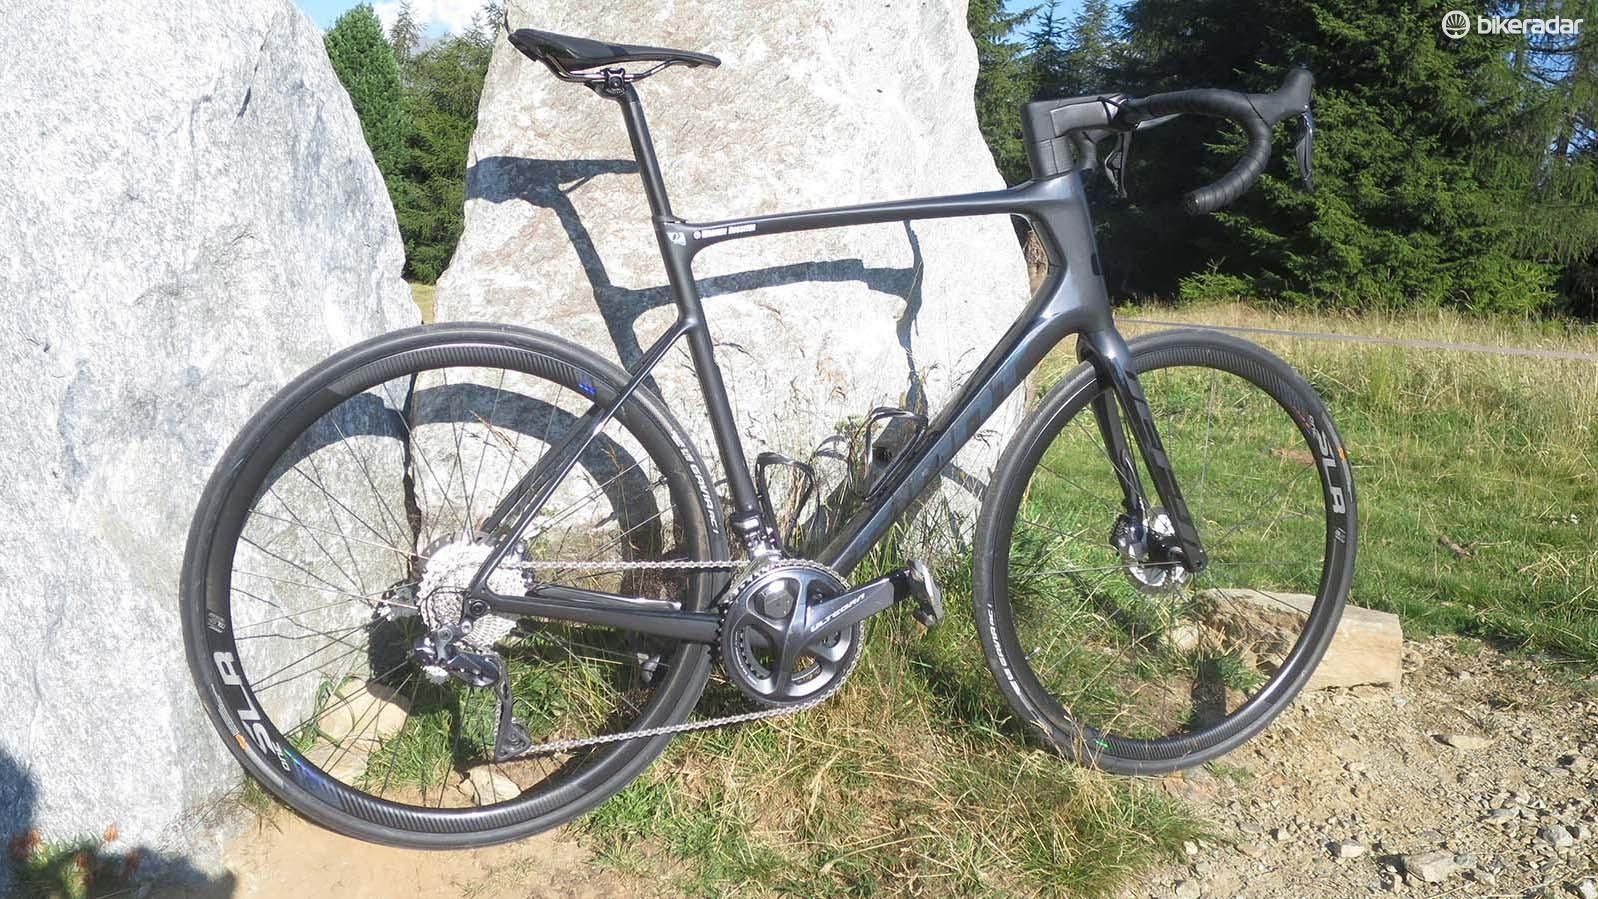 The new Defy, like the previous version, is disc brake only